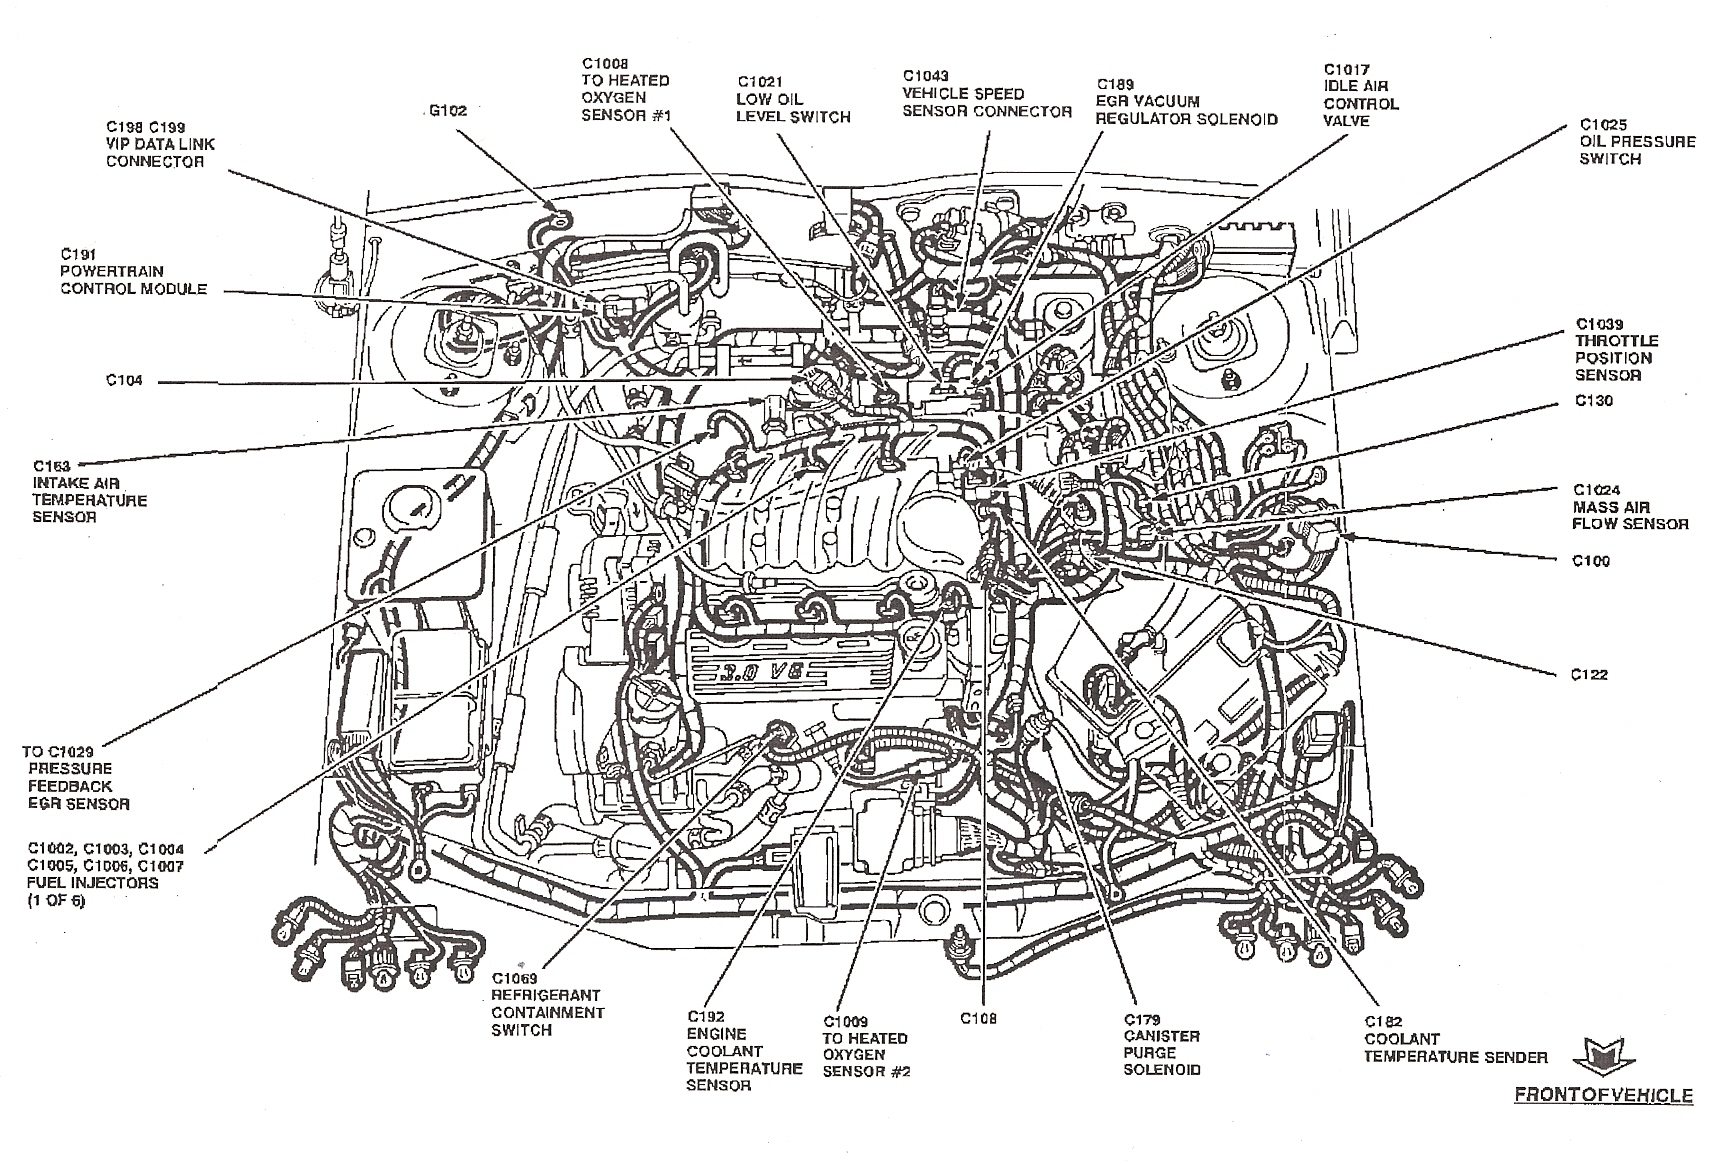 2002 Ford Focus Zts Engine Diagram Cooling Download Wiring Diagrams Fuse Box Solutions Rh Rausco Com Manual Sedan